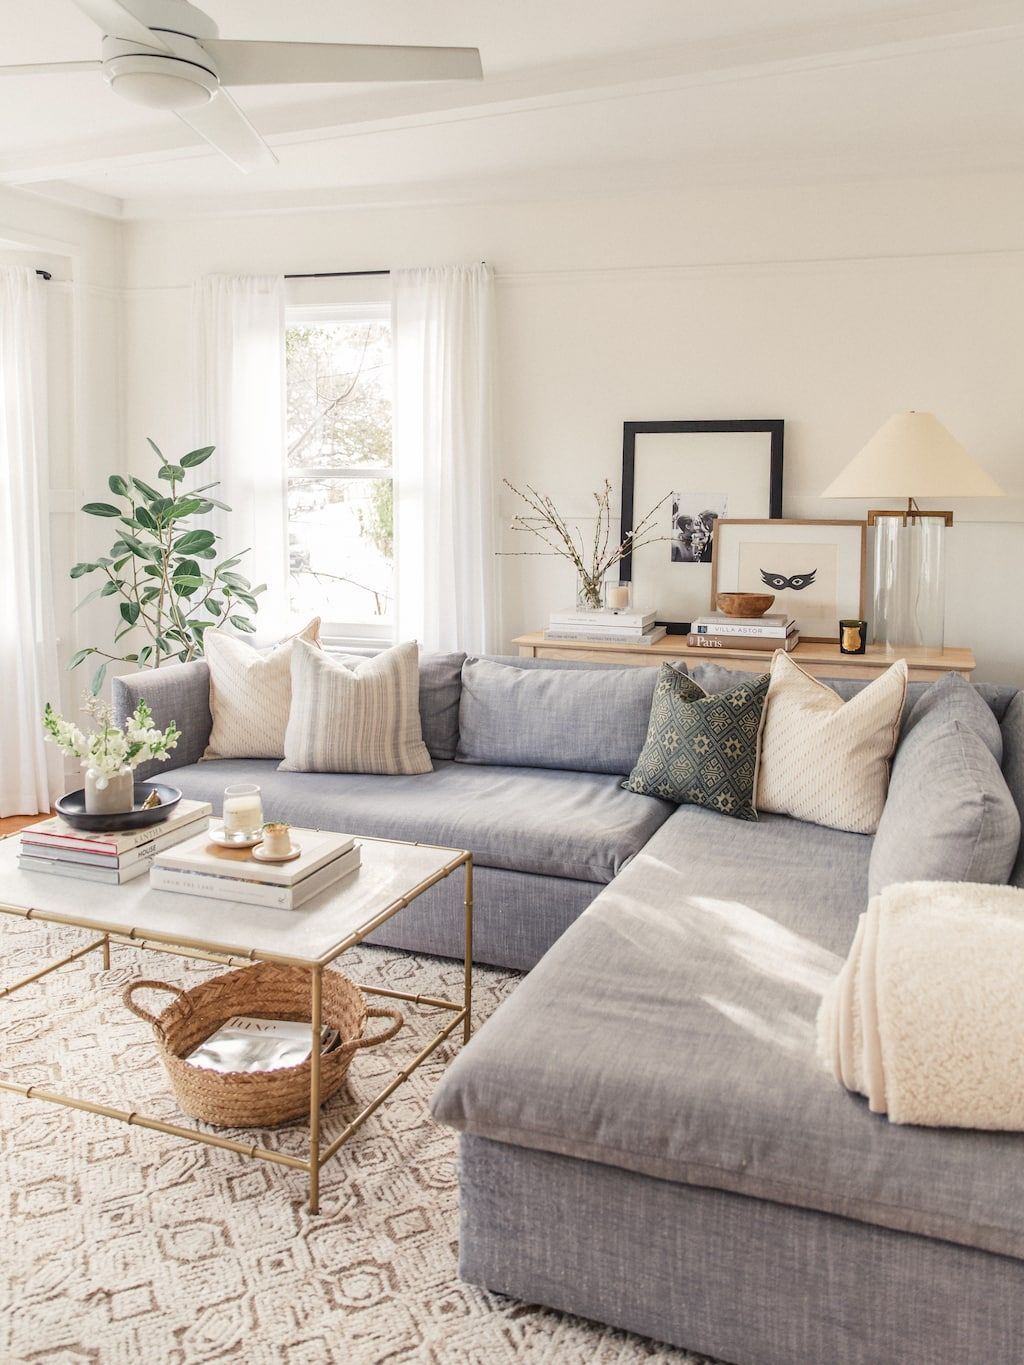 Home Decorating Trends 2020 | Small apartment decorating ...